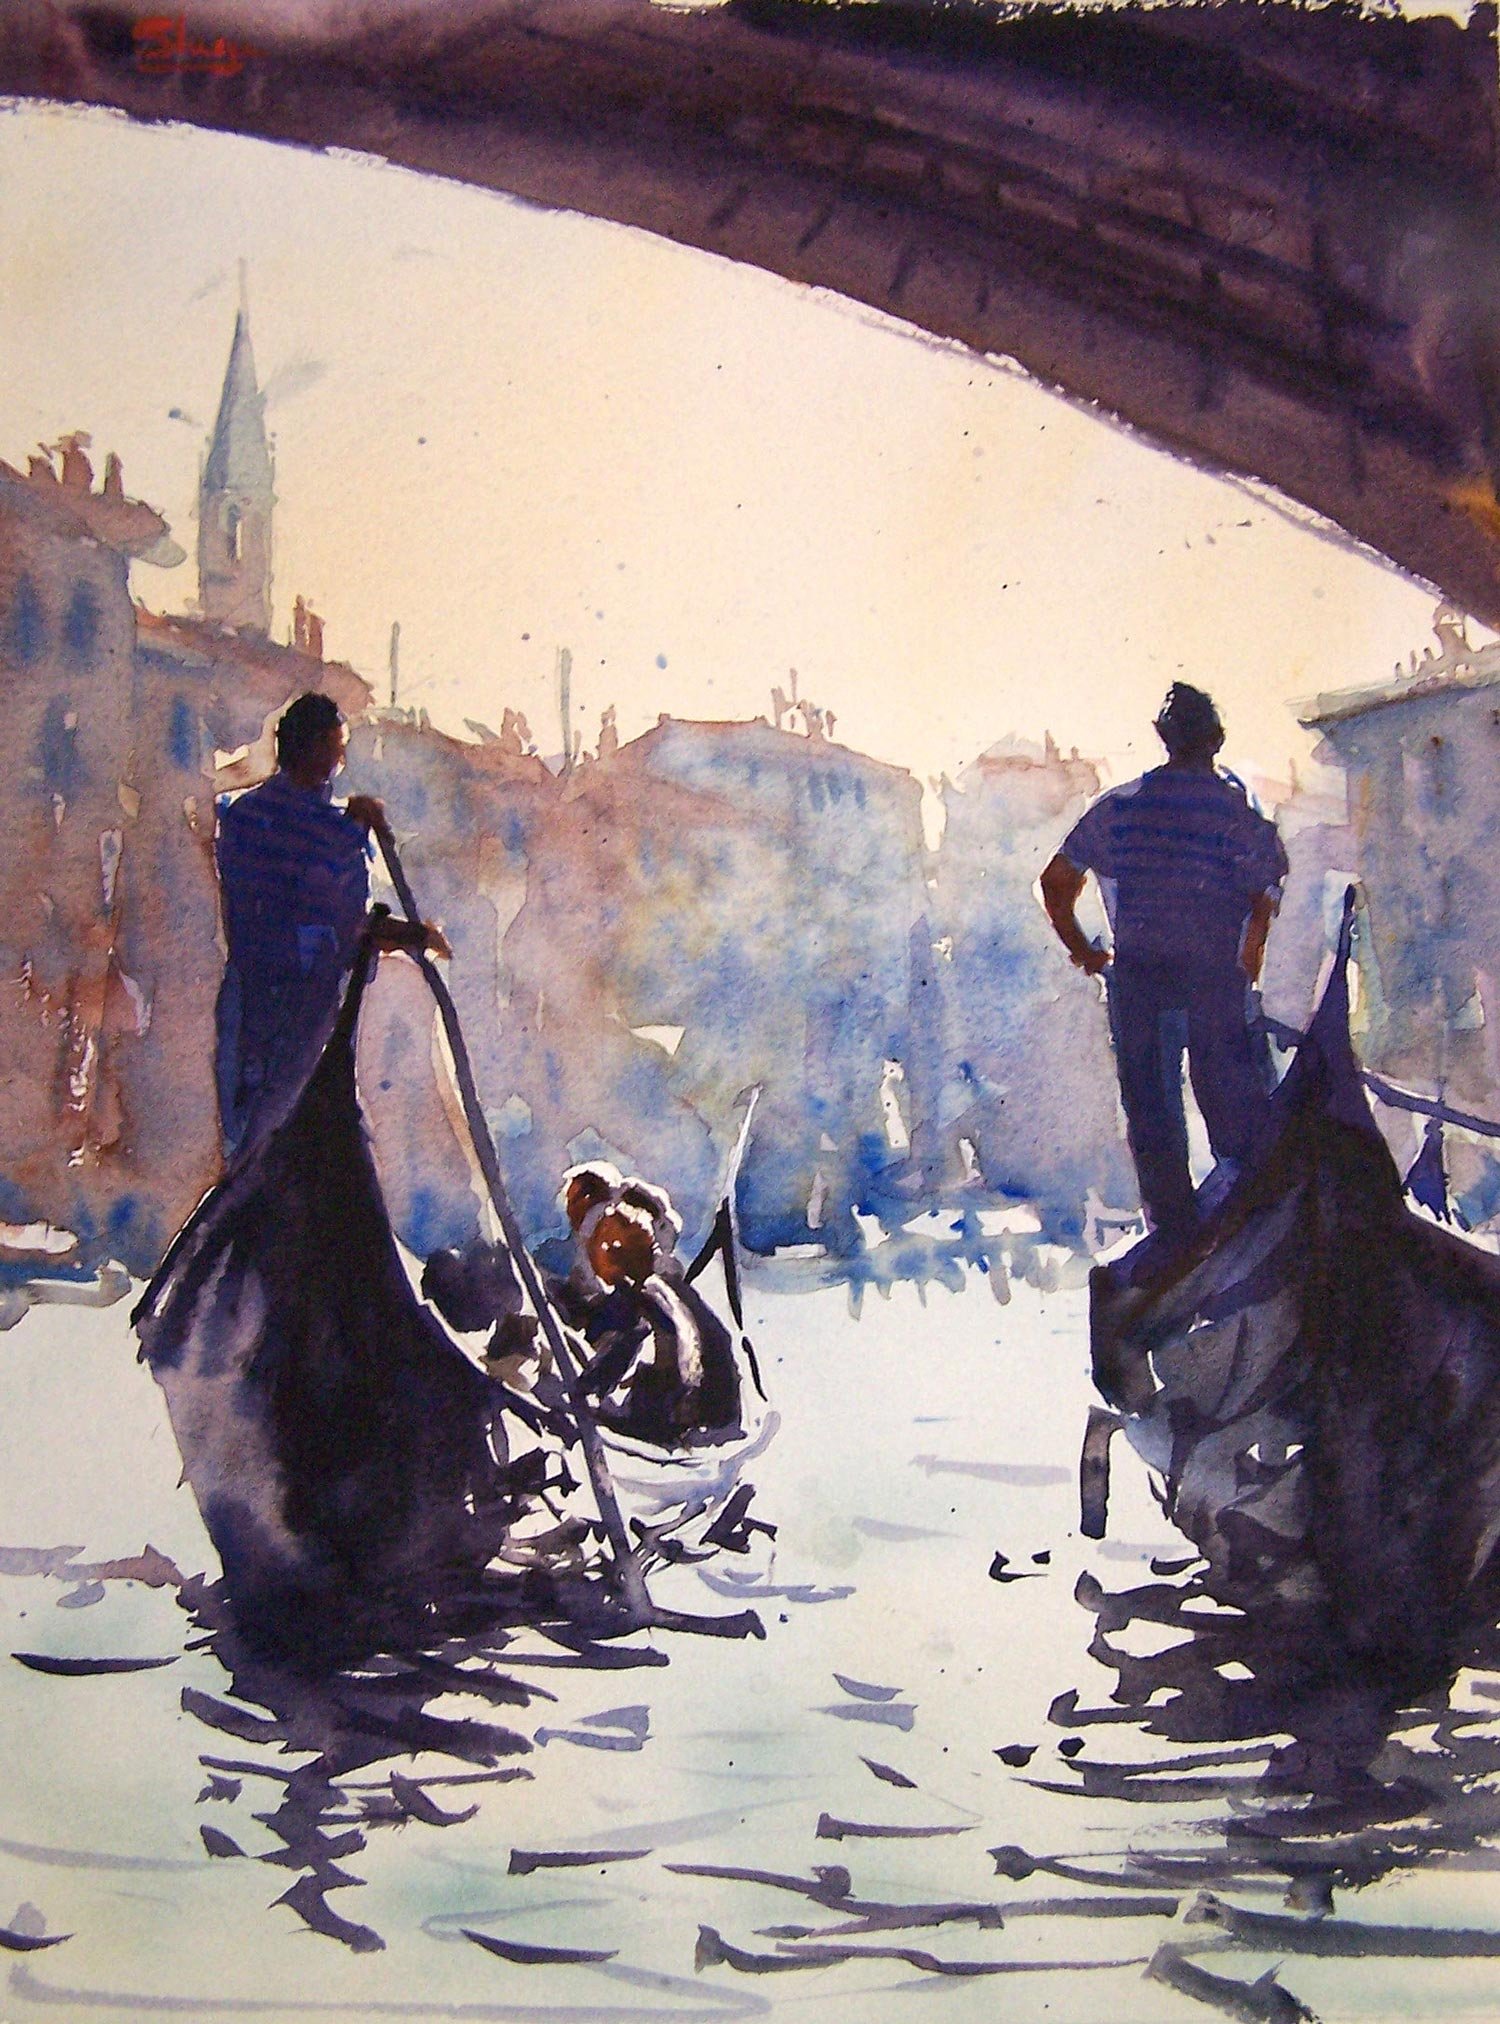 Under the Bridge  The reflections in this painting were painted over the dry under wash of the water. I made sure that the reflection was painted at the same time as the gondola to connect the two. It is only the reflection and a few extra brush strokes that give the water movement. Take these away and all is left is virtually a wash of colour to represent the water.